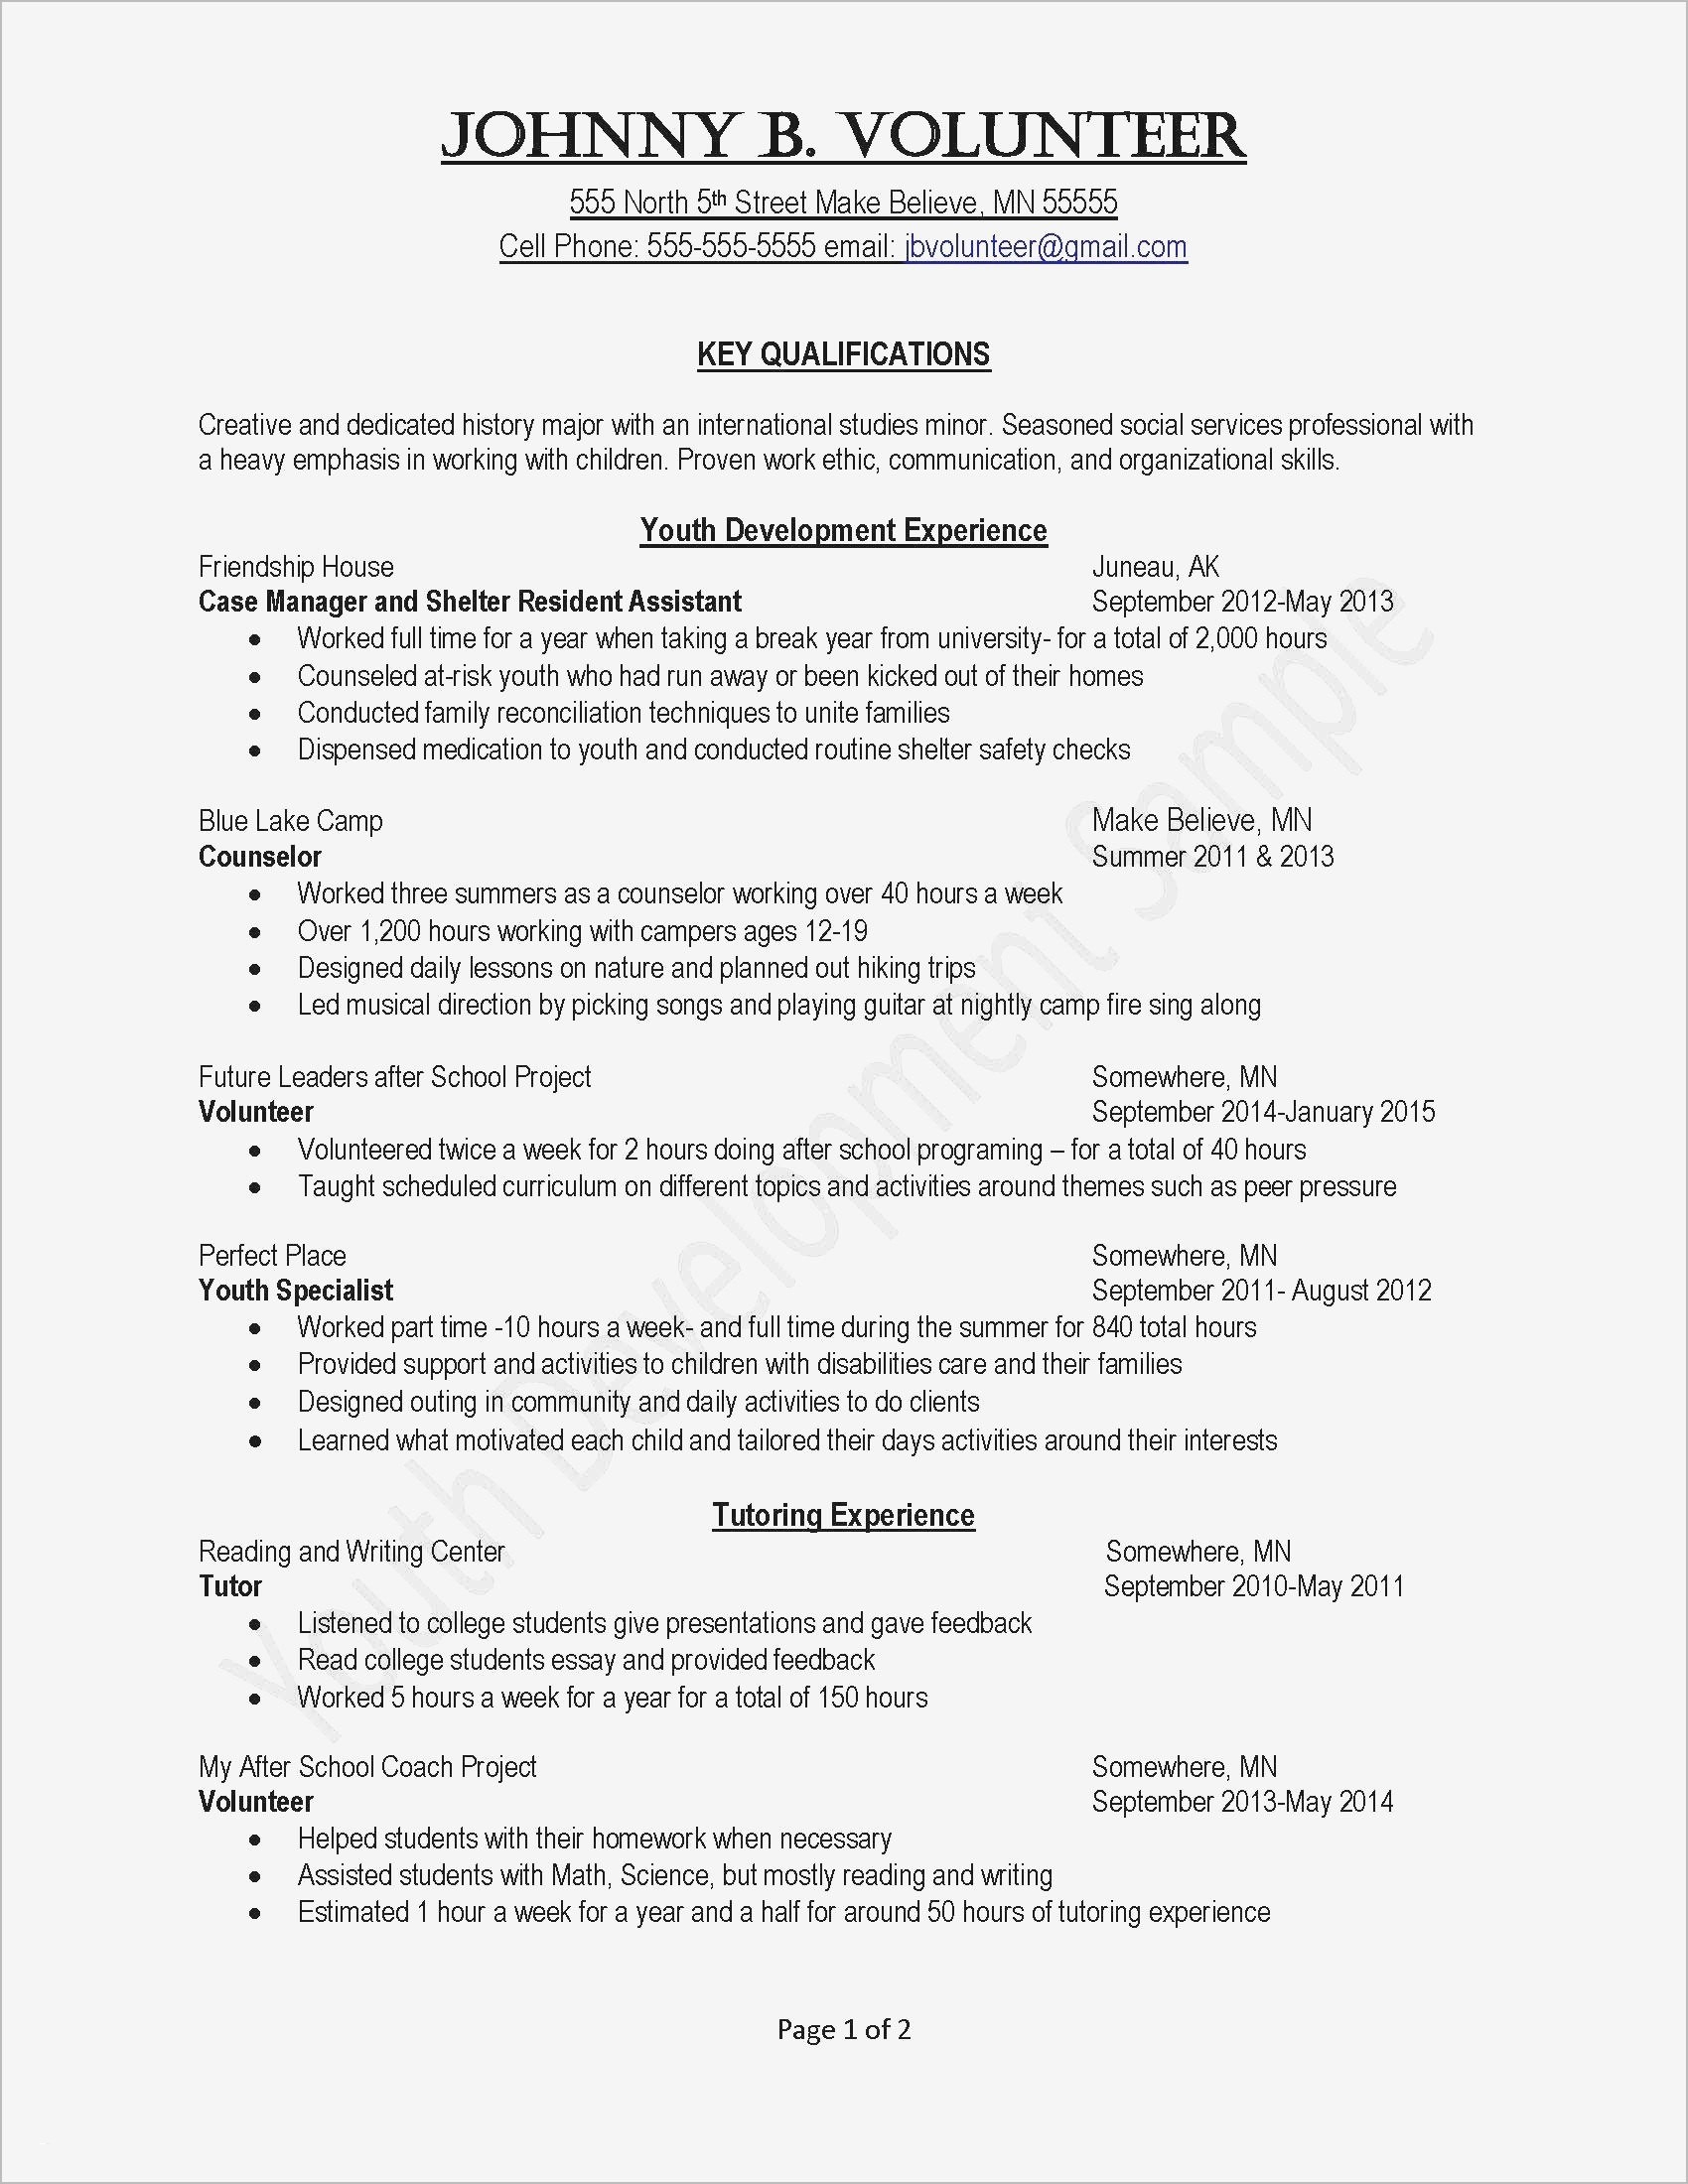 Customer Service Cover Letter Template - Resume for Customer Service Jobs Elegant Job Fer Letter Template Us